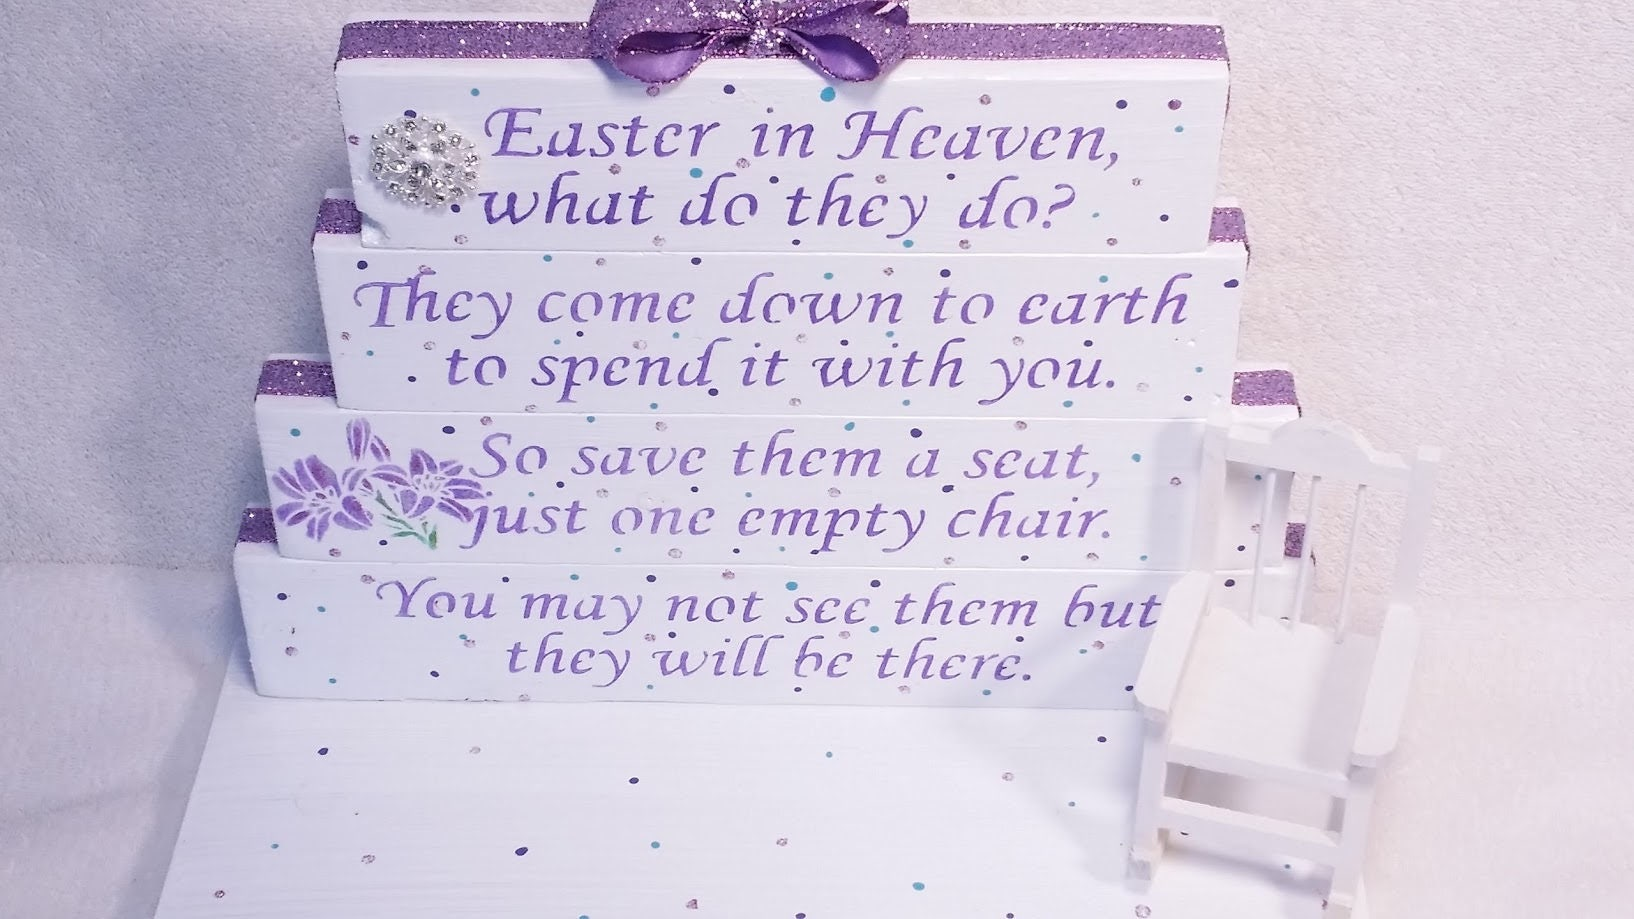 Loss Of A Loved One Quotes And Poems Easter In Heaven Poem Table Top Display Handmade Memorial